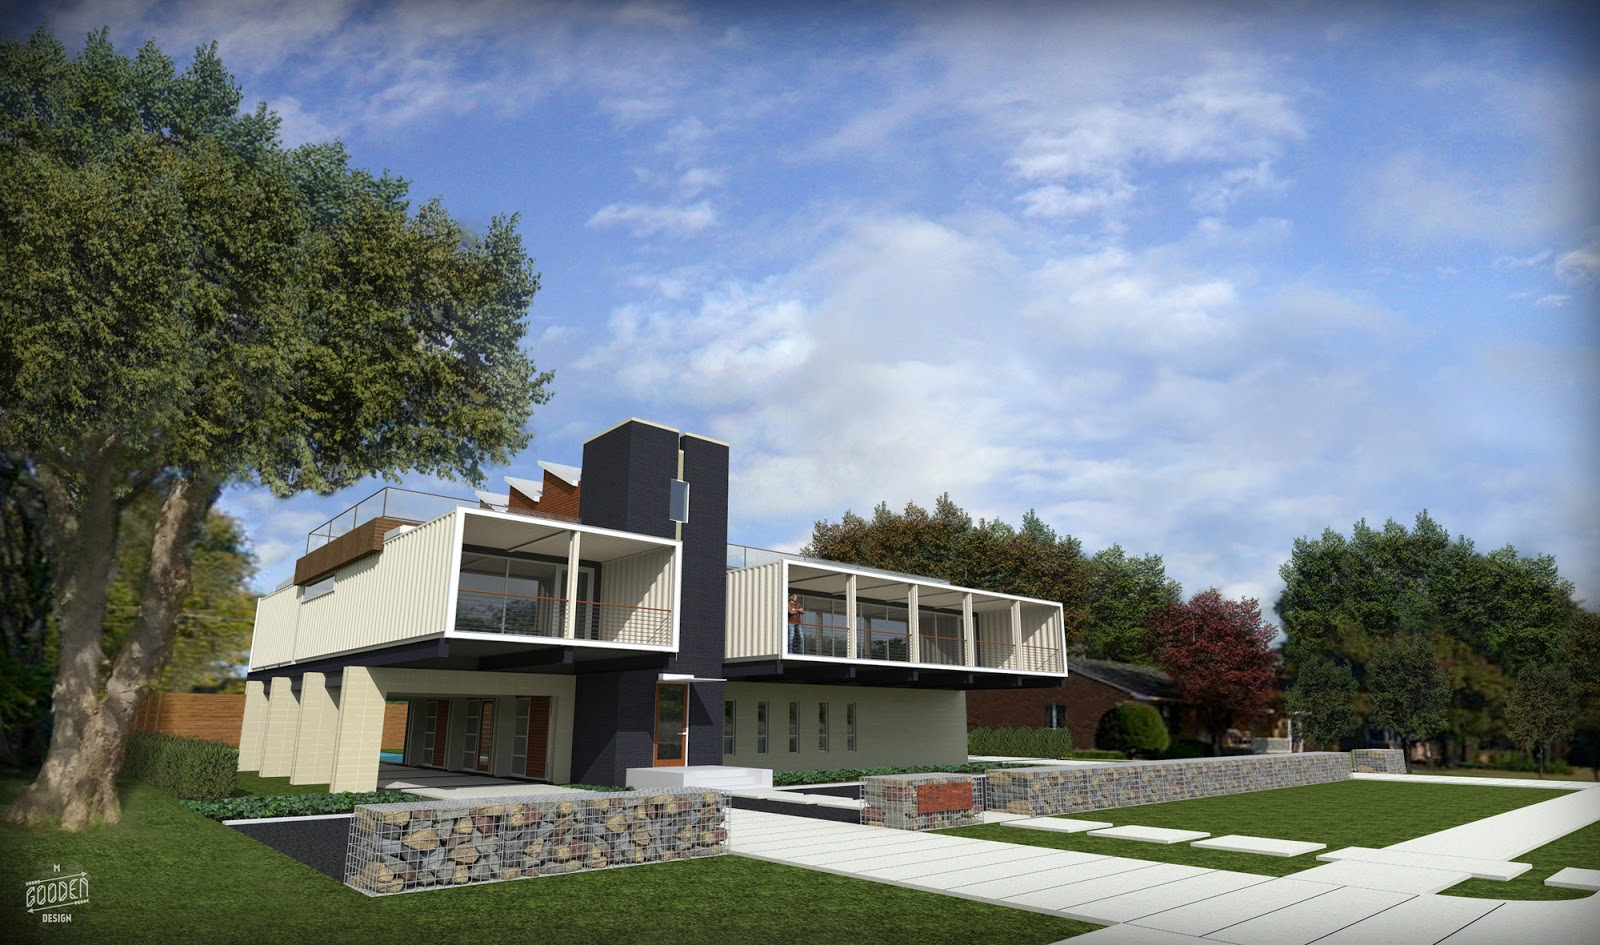 Shipping container homes pv14 two story container home by m gooden design dallas texas - Dallas home design ...